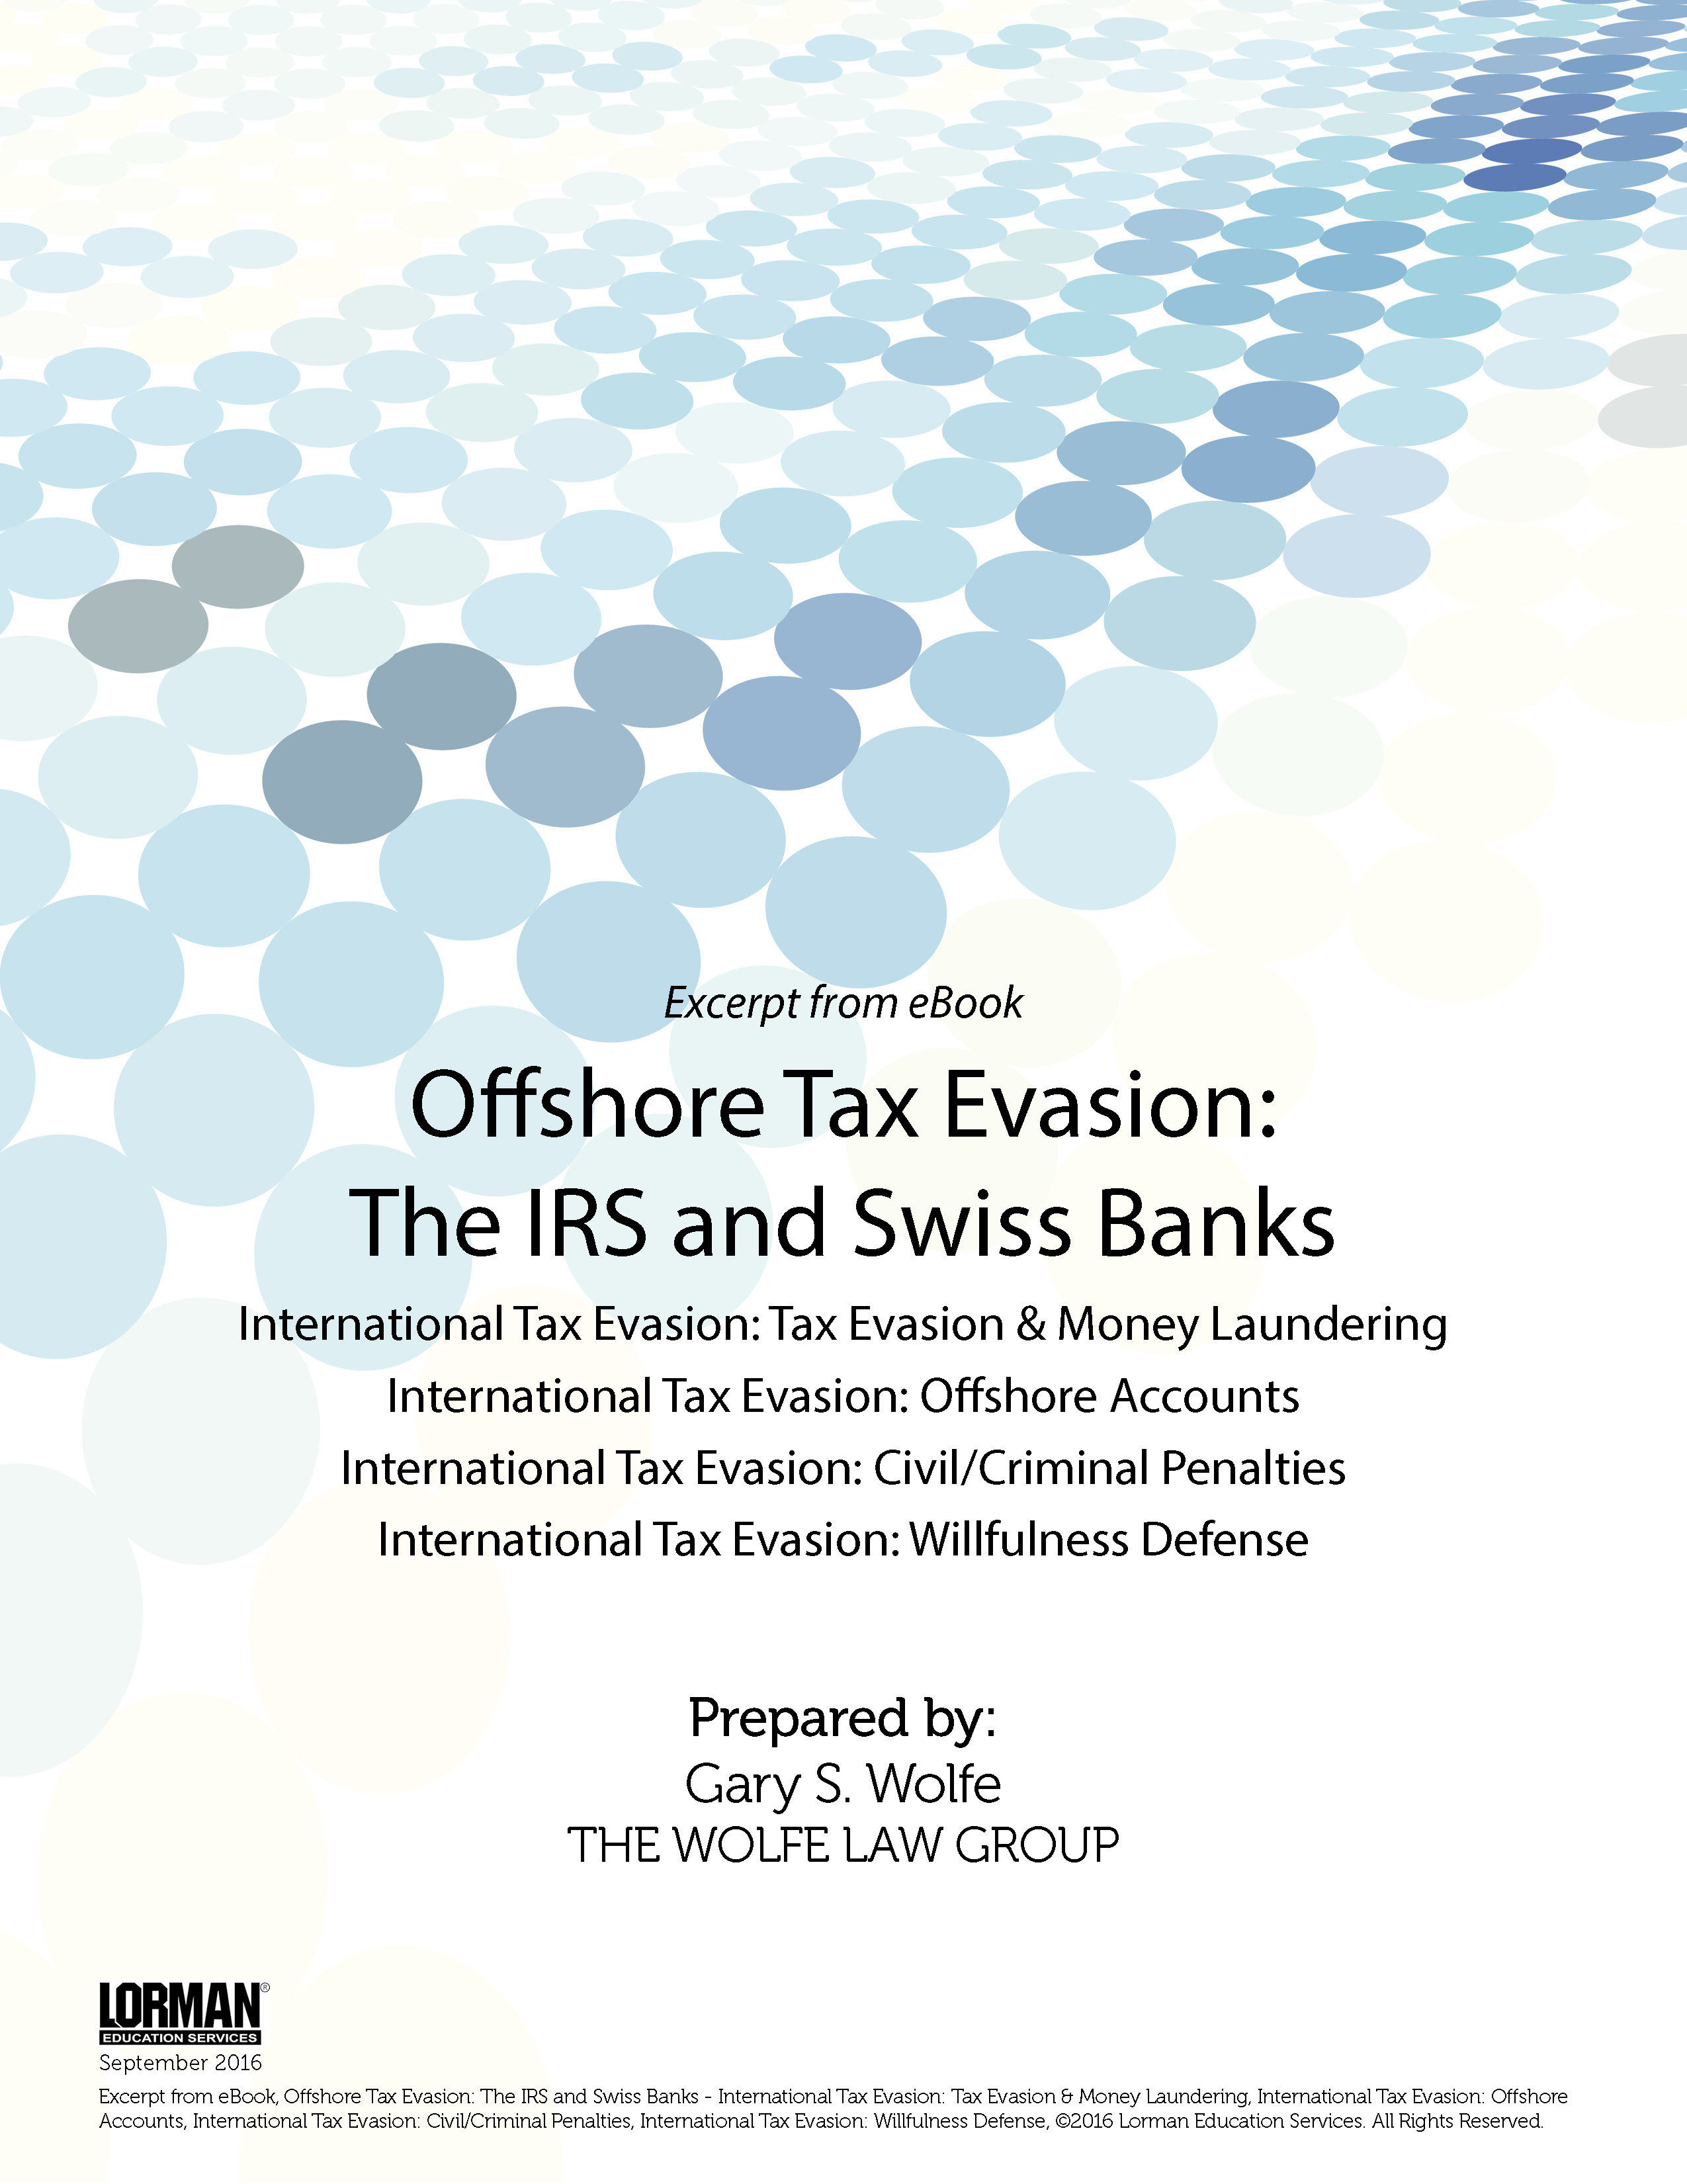 Offshore International Tax Evasion: The IRS and Swiss Banks, Money Laundering, Civil/Criminal Penalties